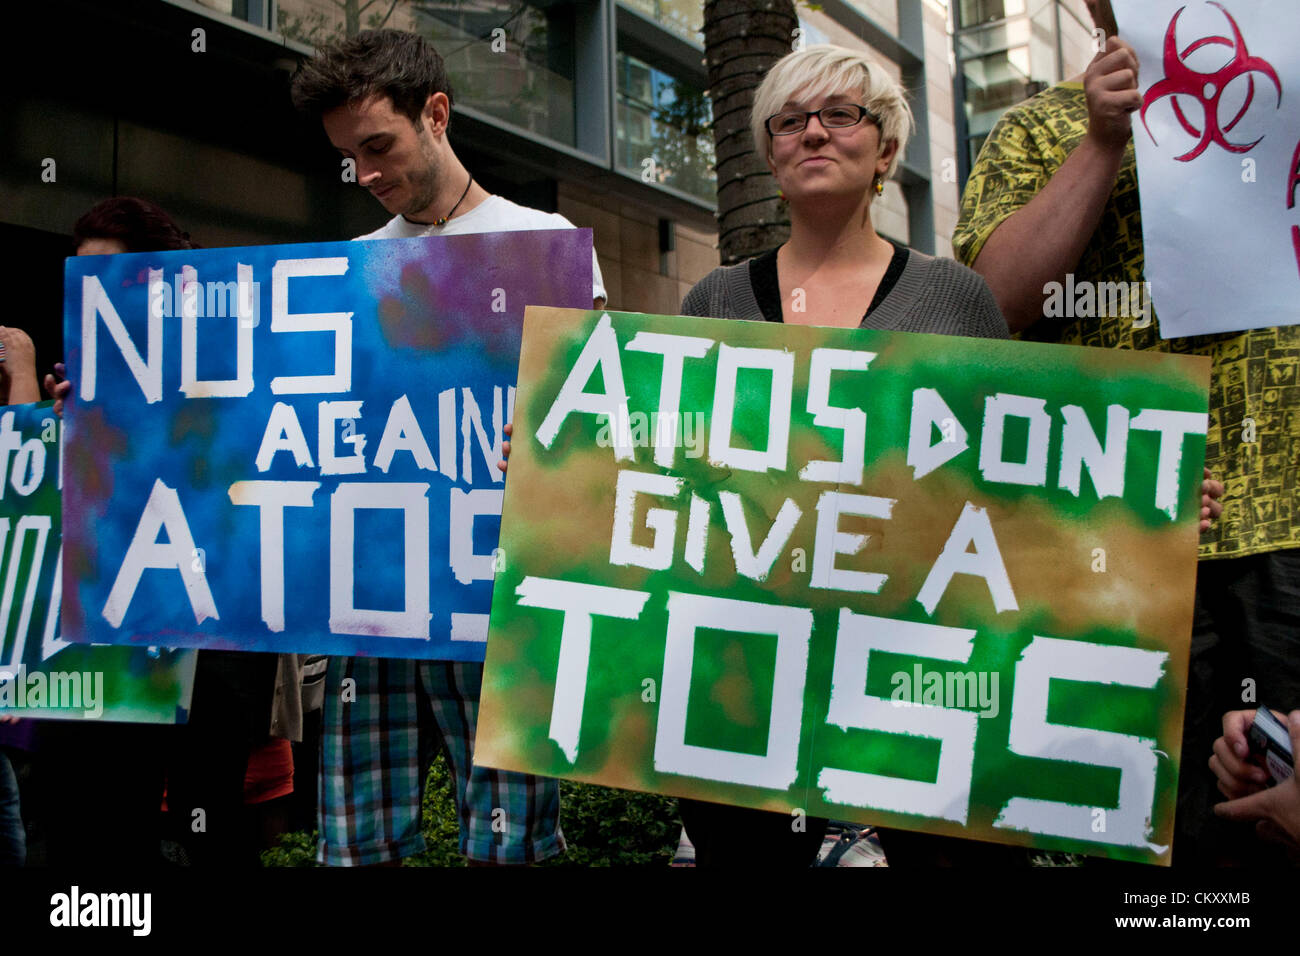 London, UK. 31st Aug 2012. Protesters outside the offices of Atos protesting at Atos sponsorship of the Paralympic - Stock Image